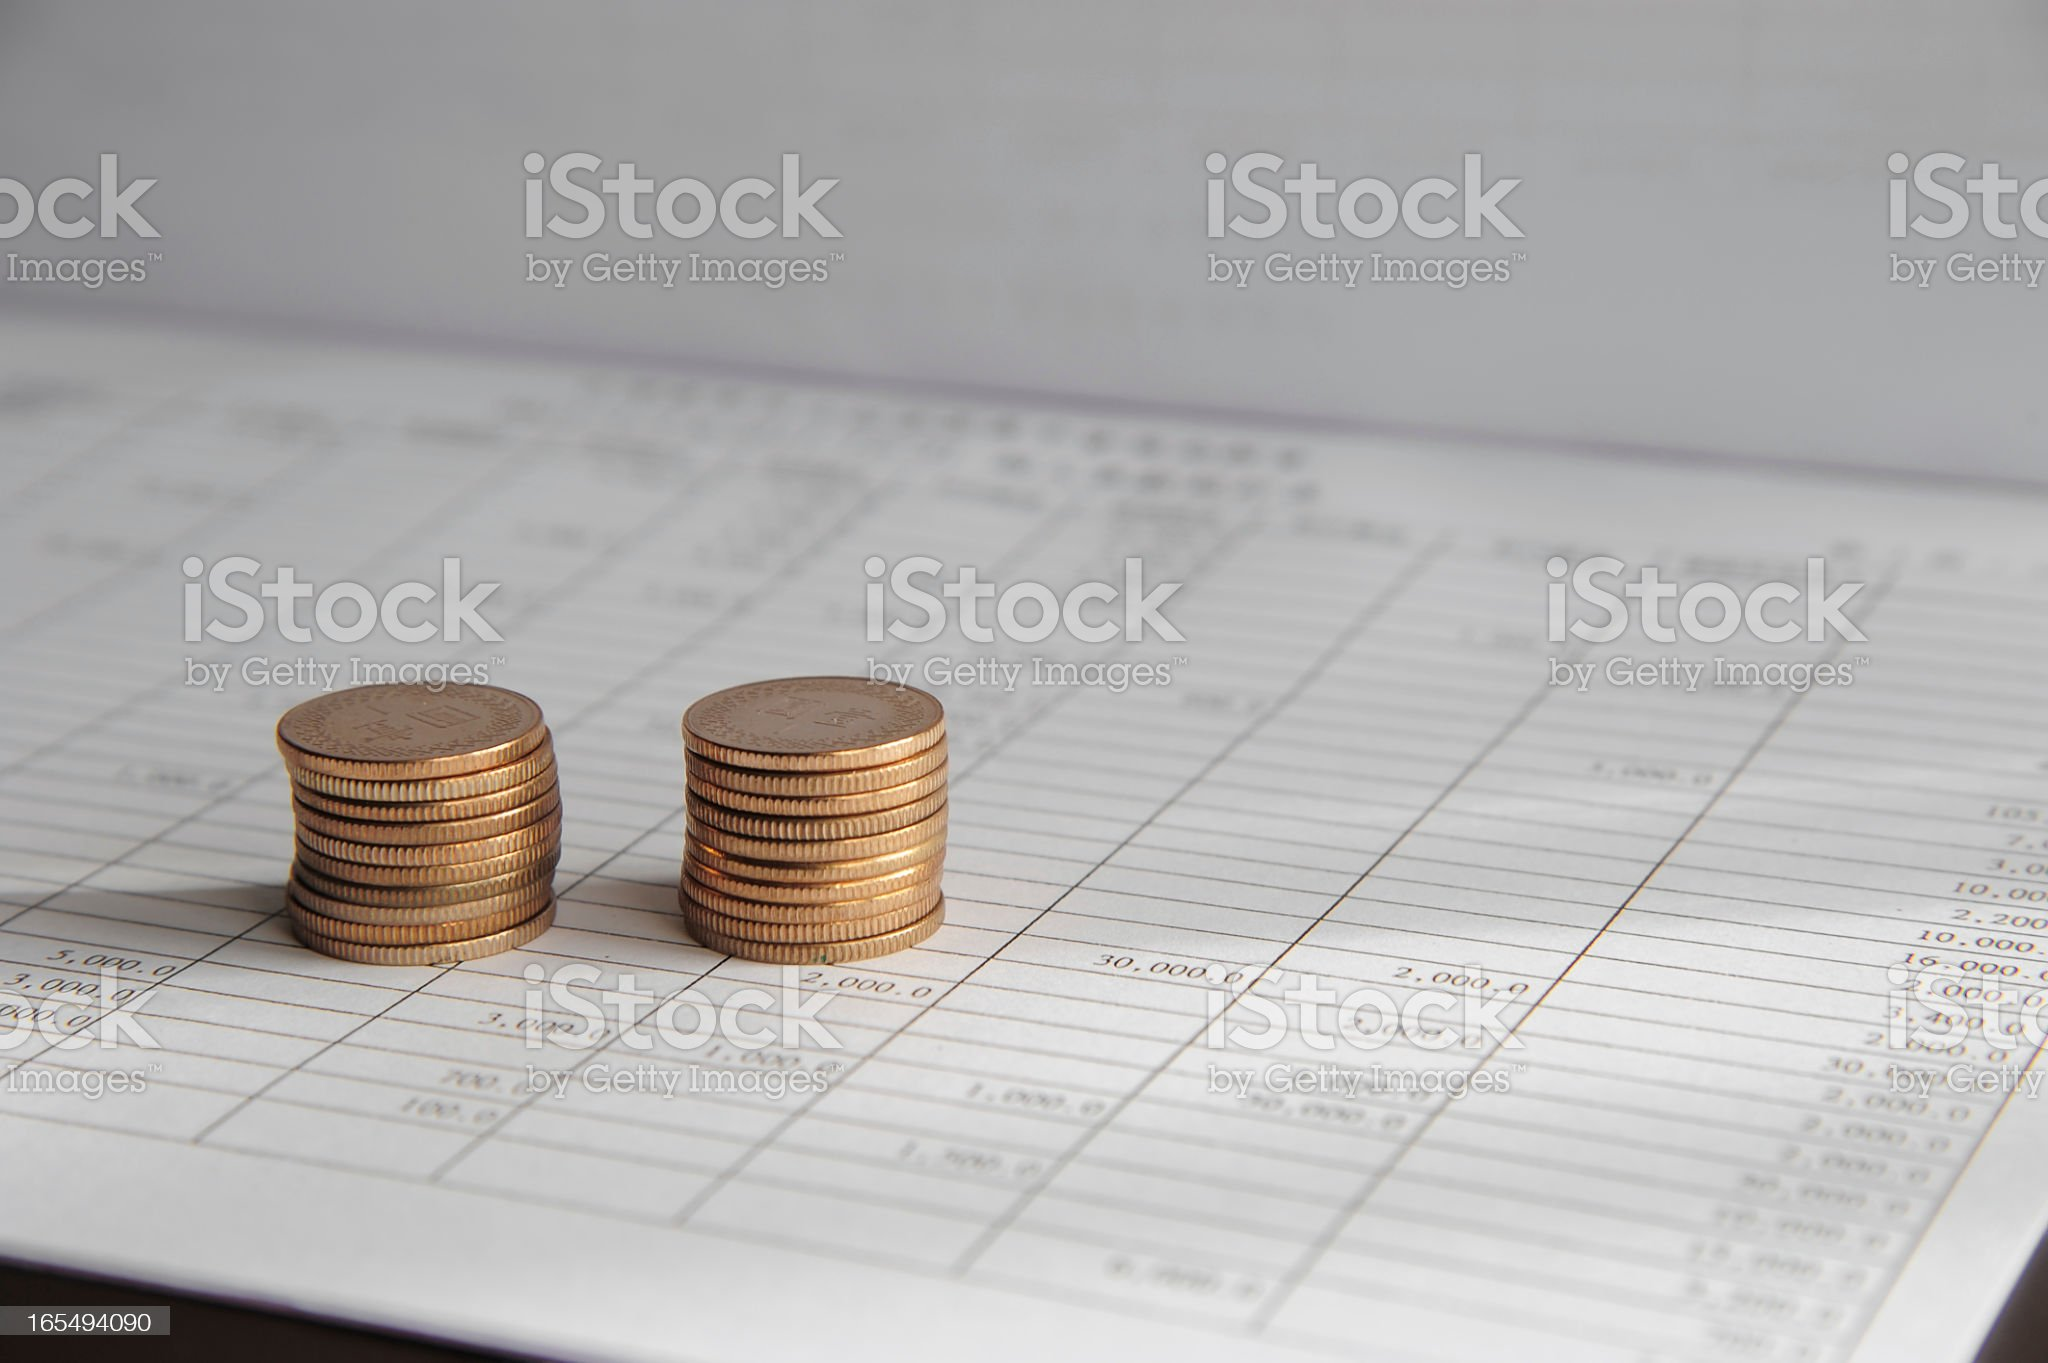 Coin on Business Paper royalty-free stock photo